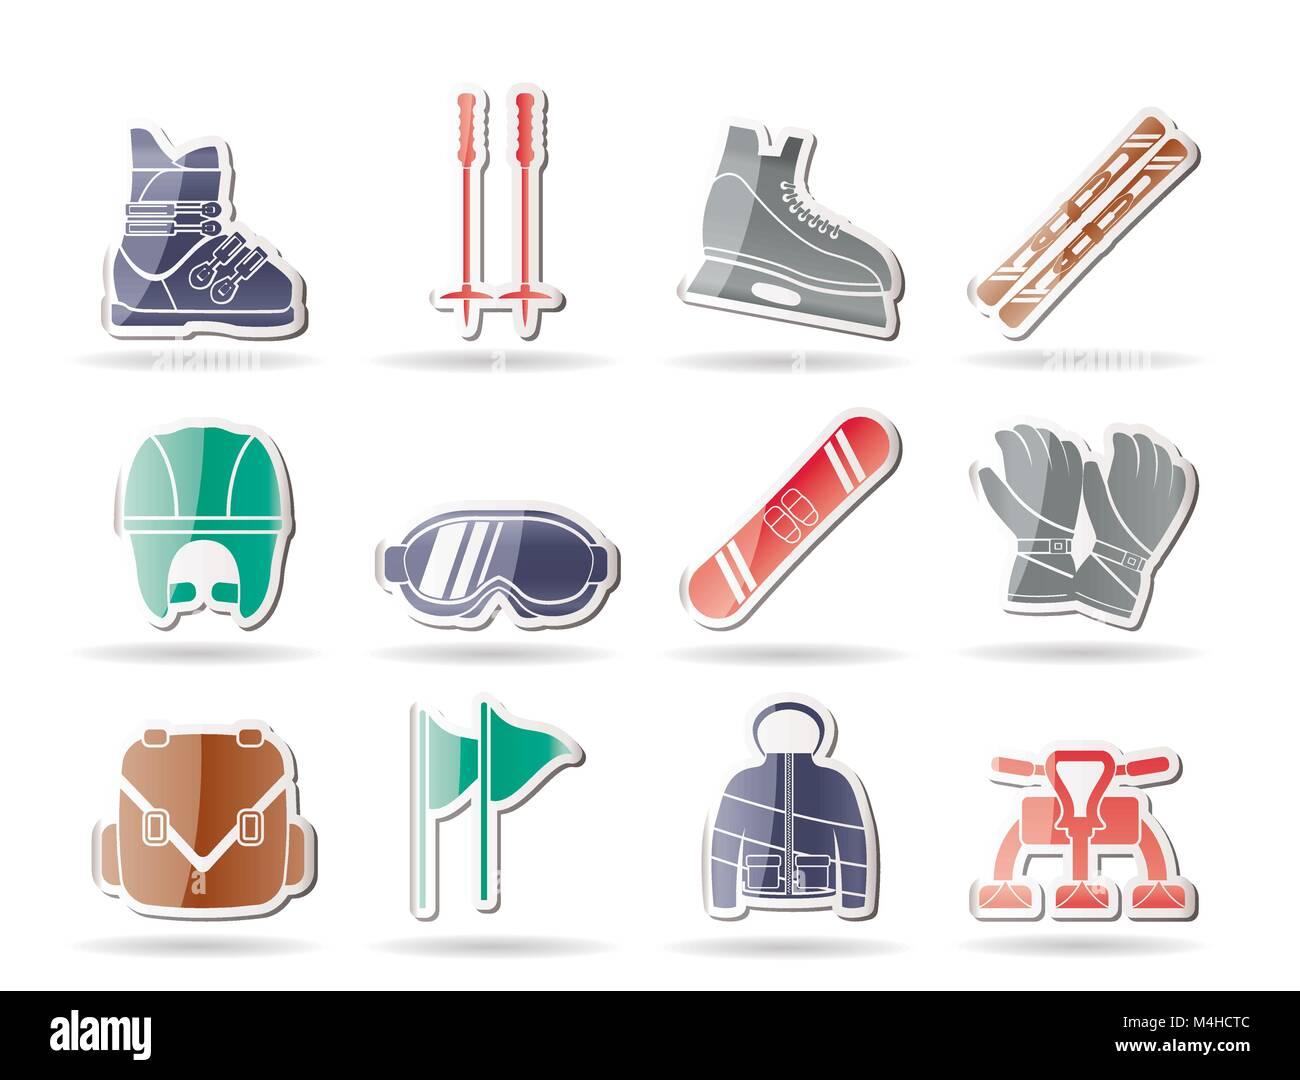 ski and snowboard equipment icons - vector icon set - Stock Image